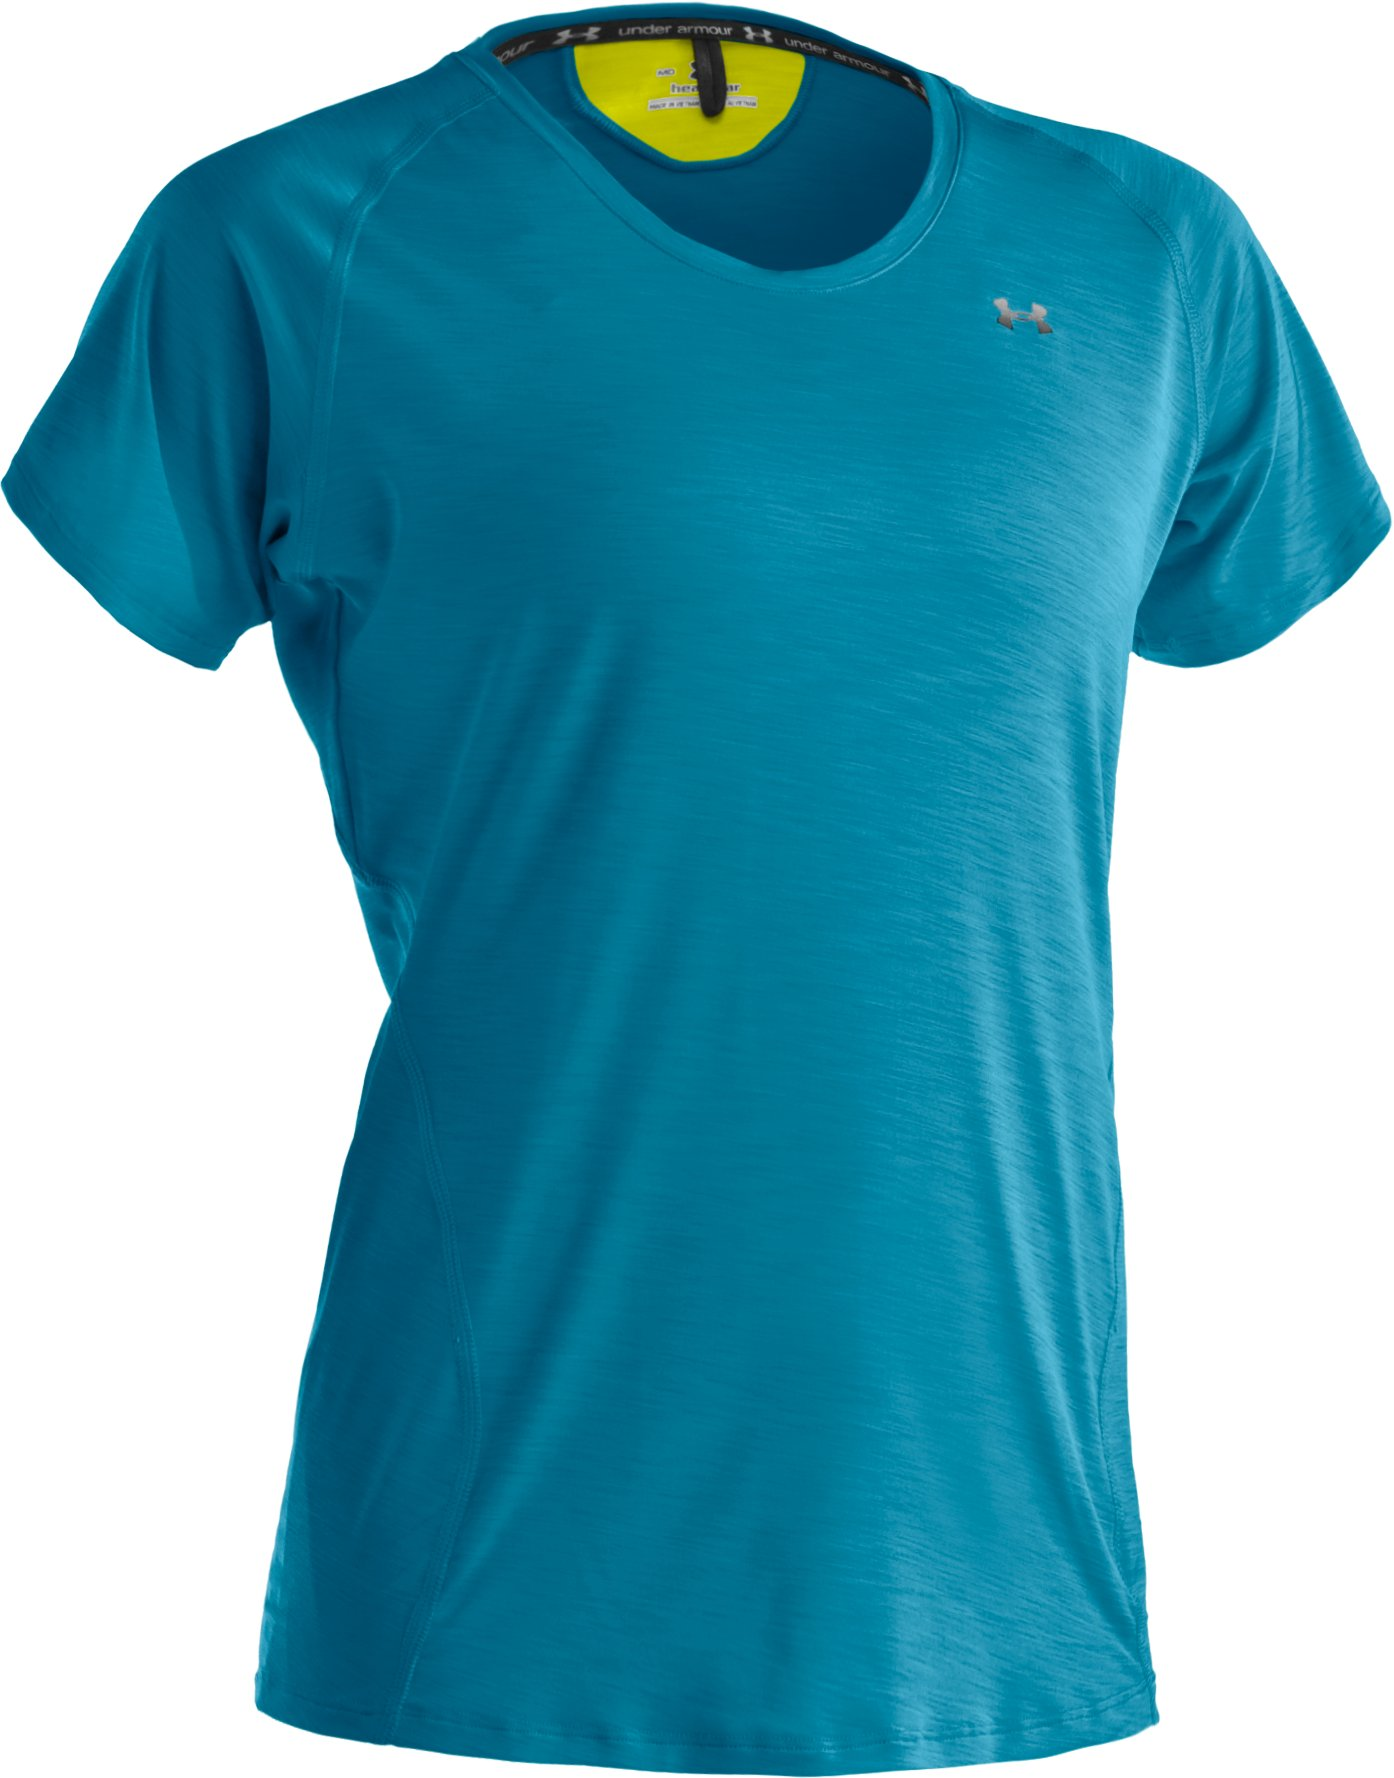 Women's UA Escape Get Started Short Sleeve T-Shirt, Break